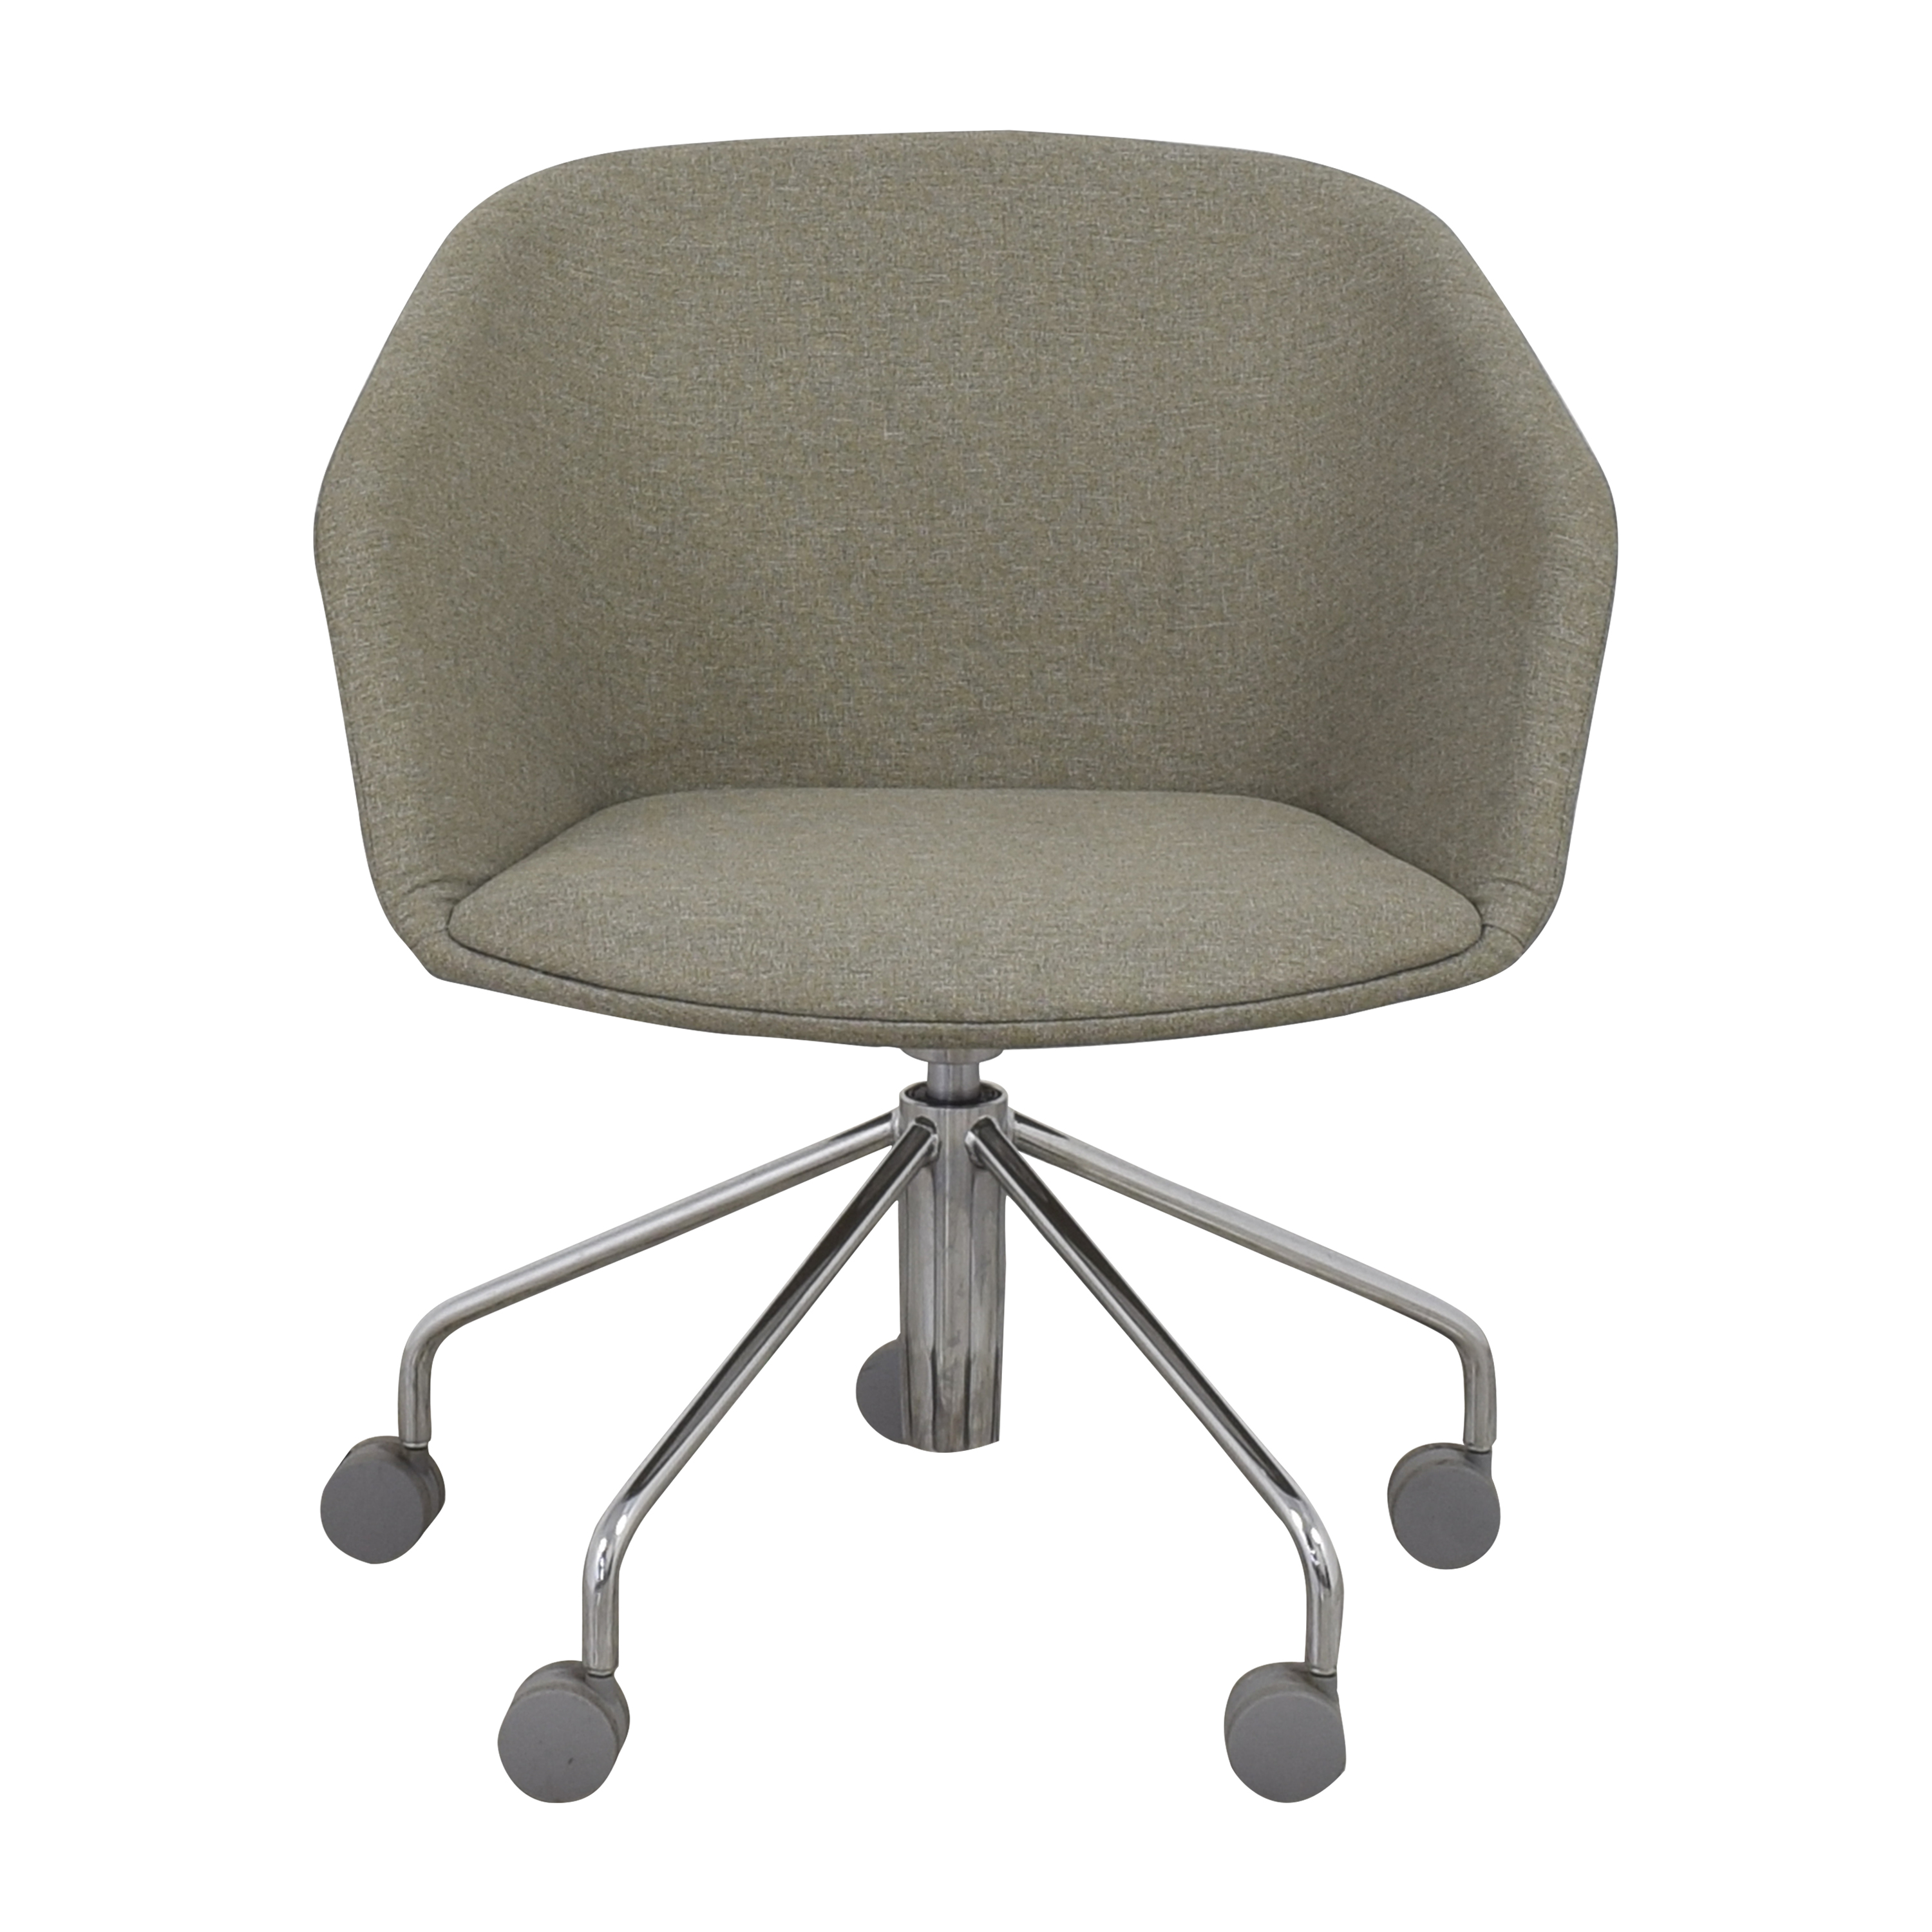 buy Poppin Poppin Pitch Meeting Chair online